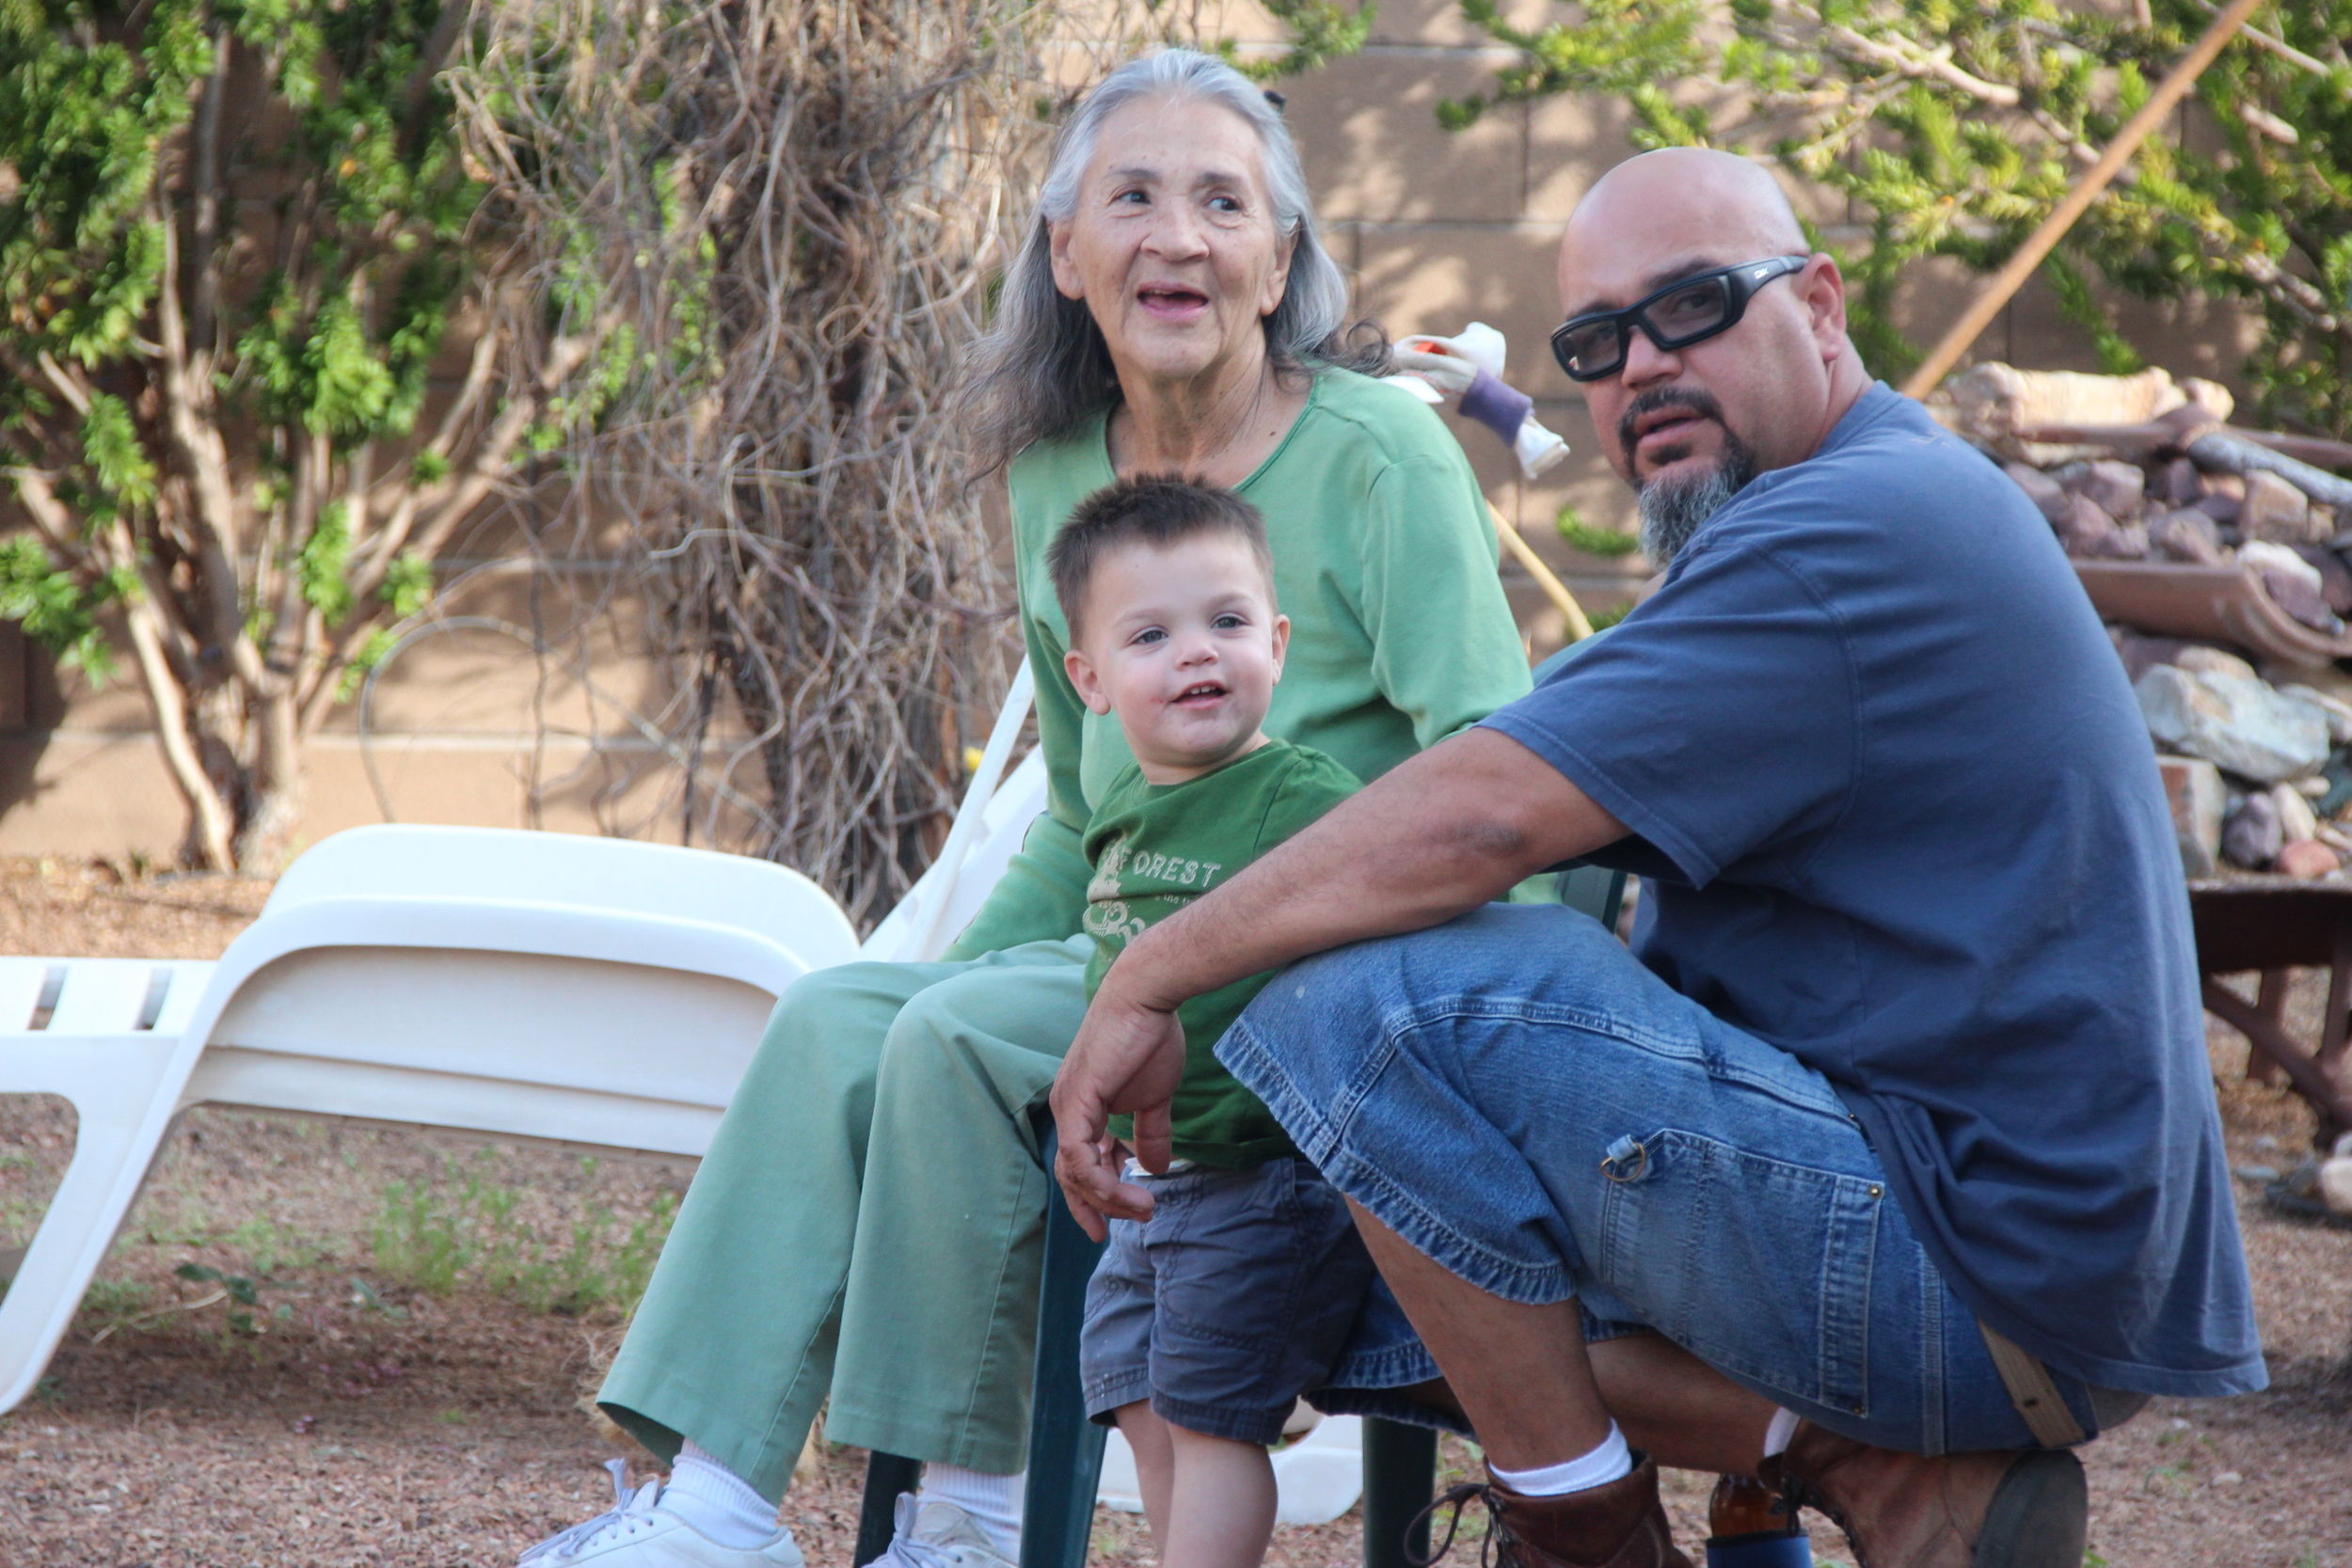 Gladys enjoys the company of her son Roland Jr. and great-grandchildren. © Nigar Fatali